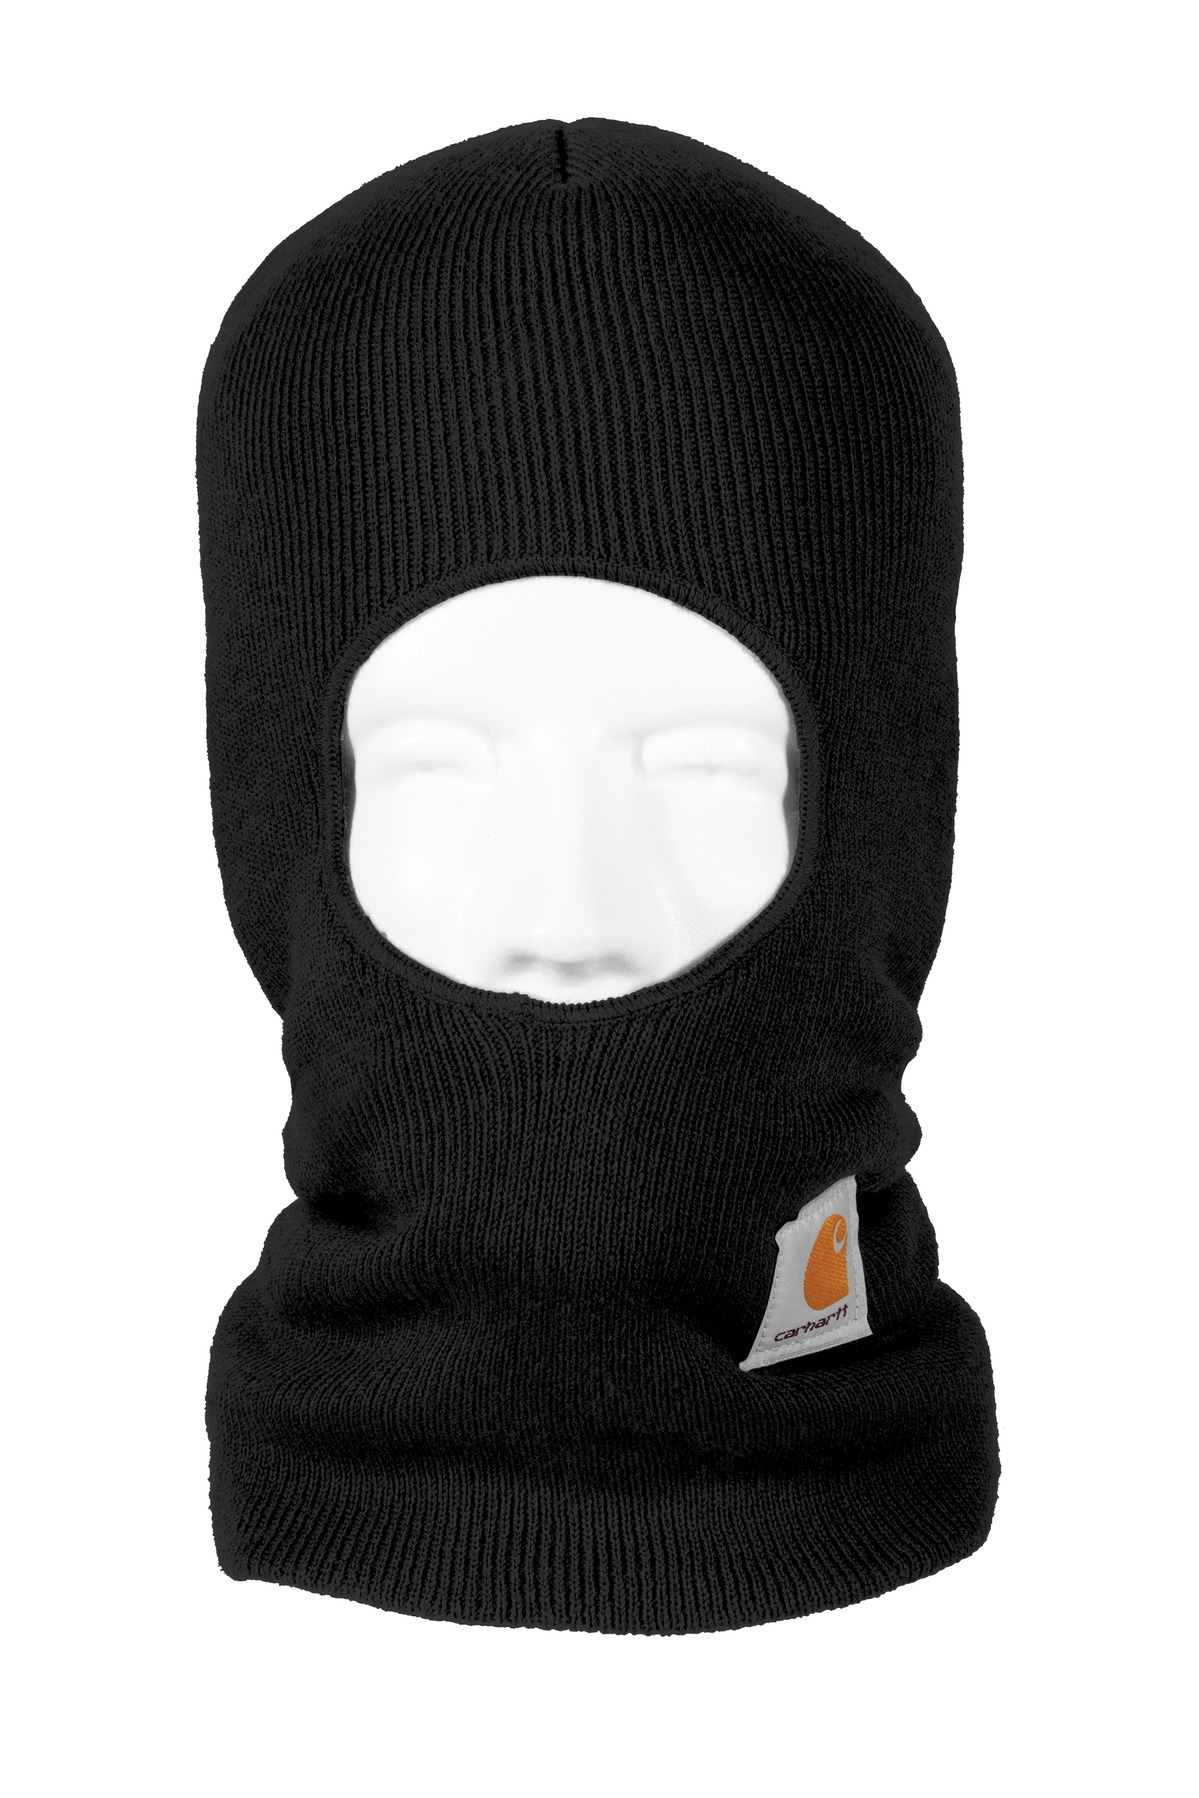 Carhartt ® Face Mask.